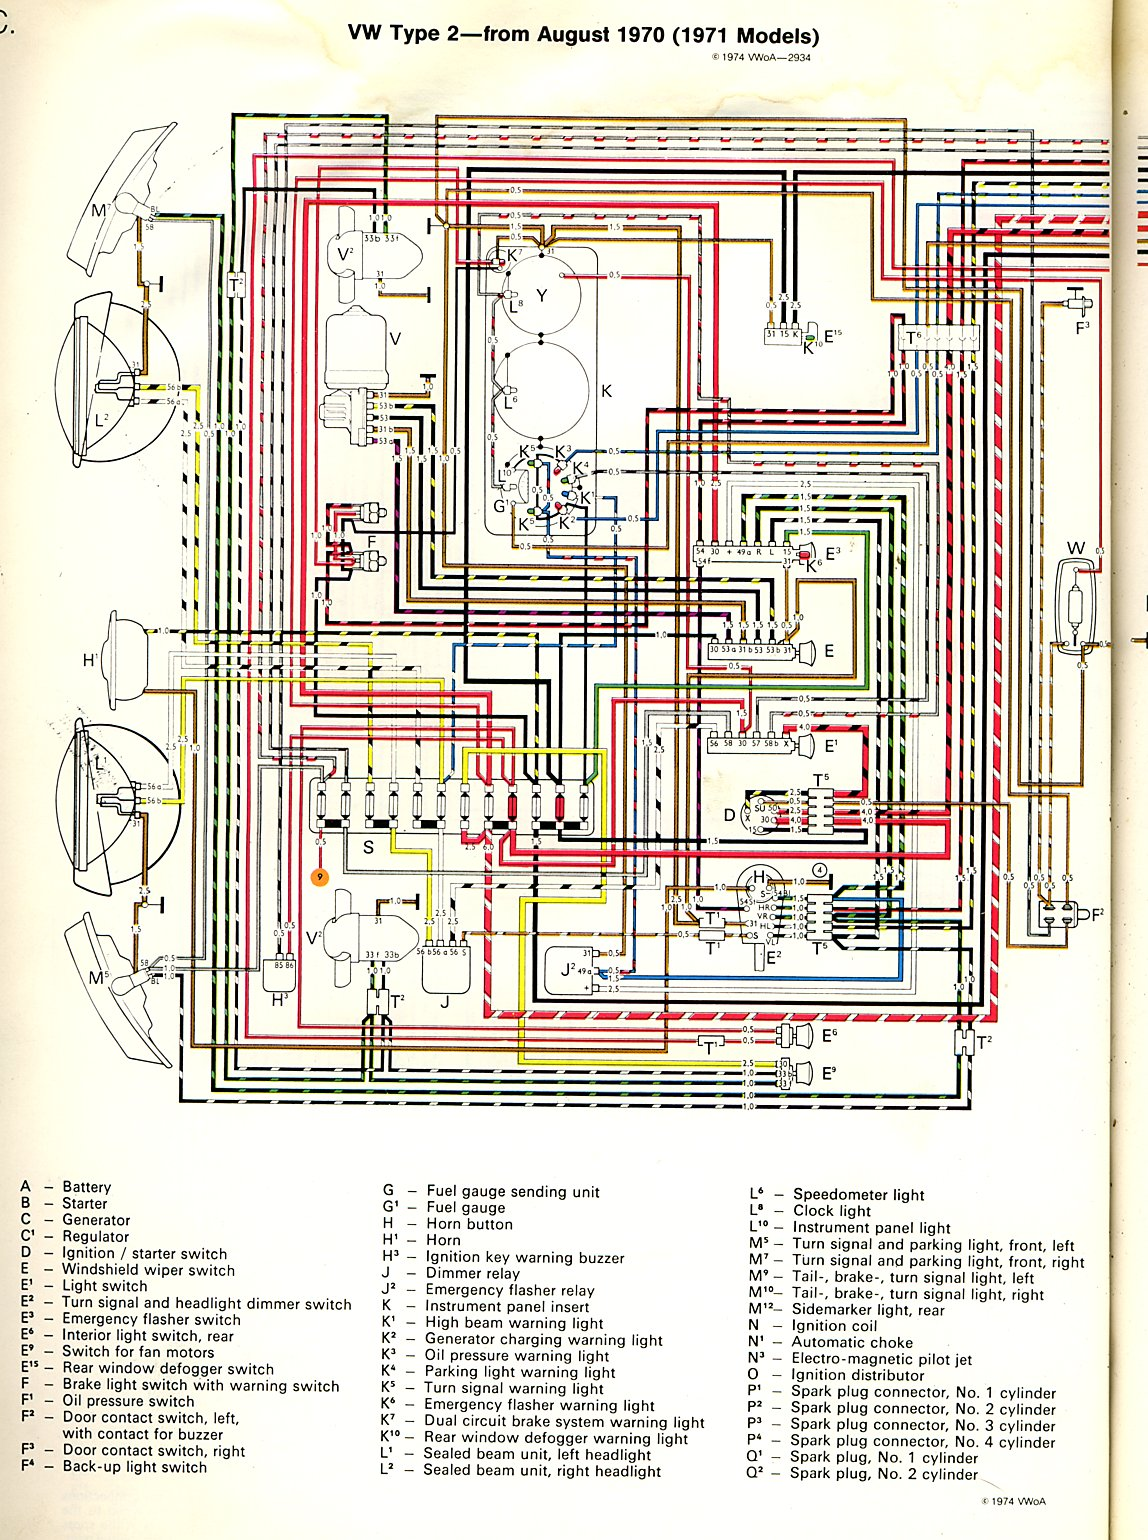 Type 2 Wiring Diagrams Chevy Astro Van Diagram For Window